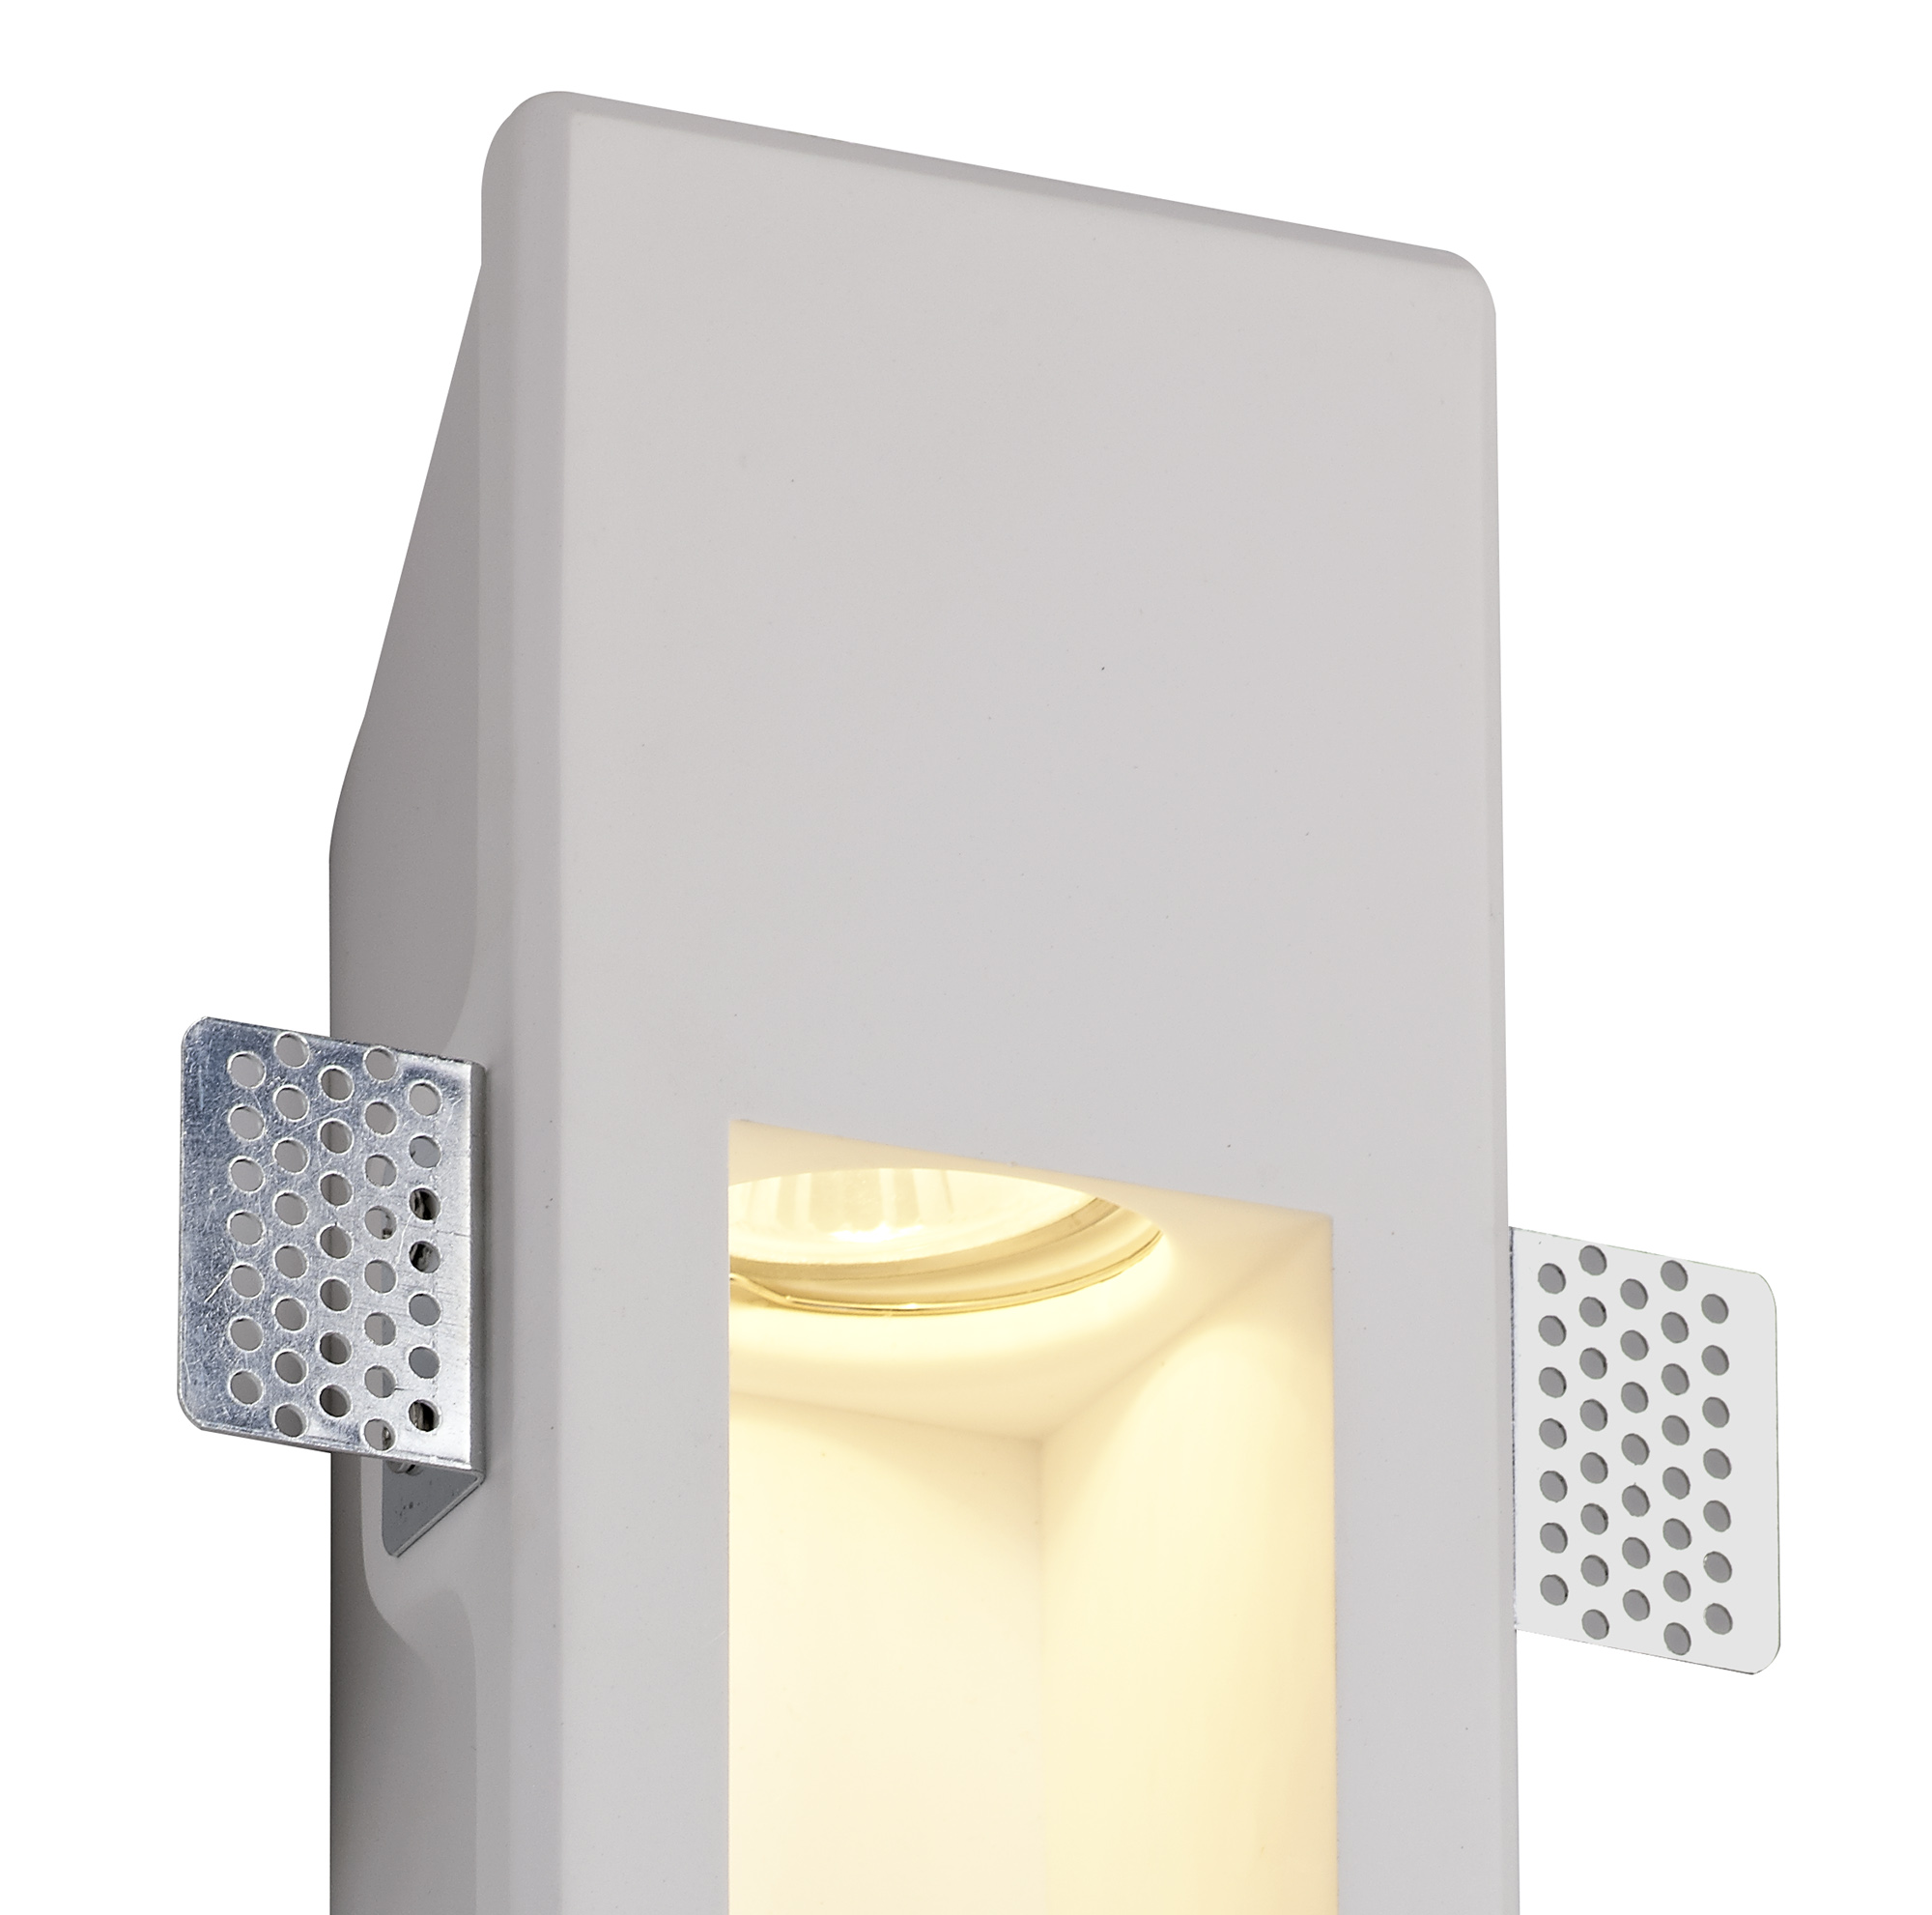 Large Recessed Wall Lamp, 1 x GU10, White Paintable Gypsum, Cut Out: L:453mmxW:103mm